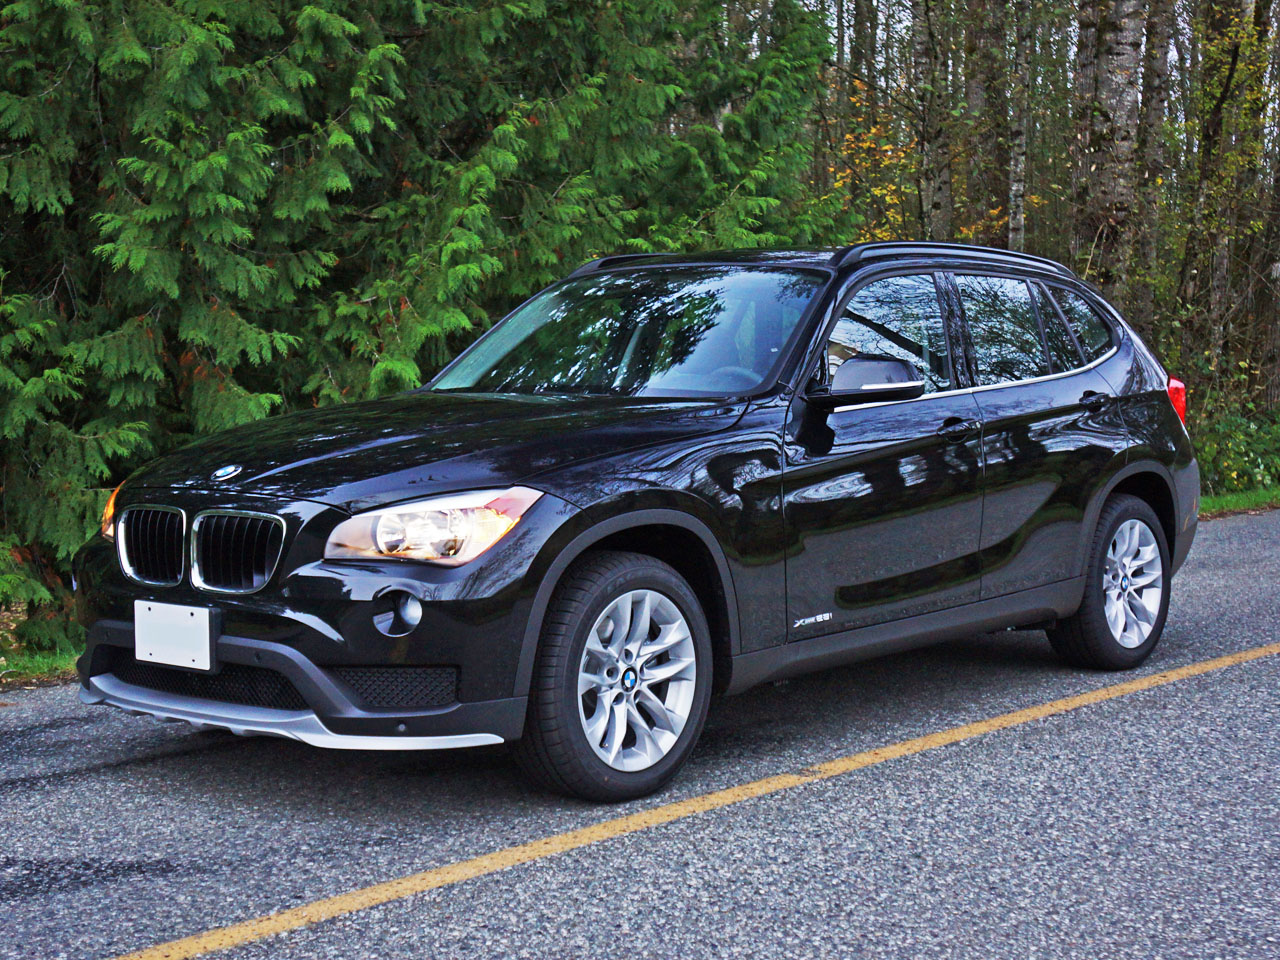 2015 BMW X1 XDrive28i Road Test Review